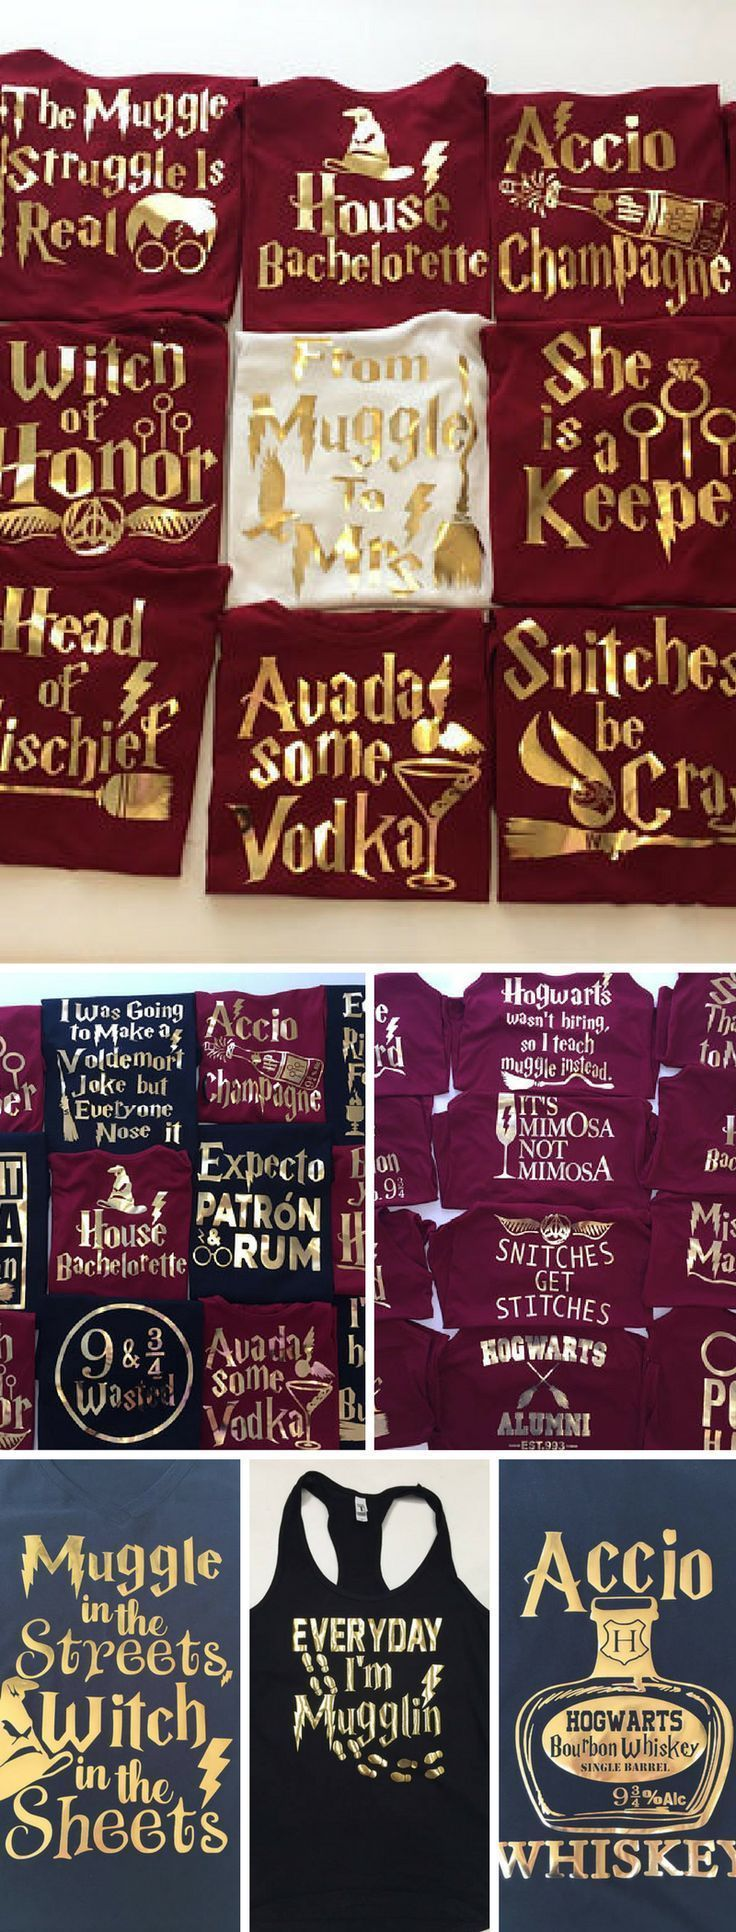 Over 30 choices of Funny Harry Potter themed t-shirts and tank tops. Love ALL of them! Perfect for gifts for for friends and family or even bachelor and bachelorette parties. #HarryPotter #Bachelorette #GiftsForHer #GiftsForHim #affiliate #Christmasgift